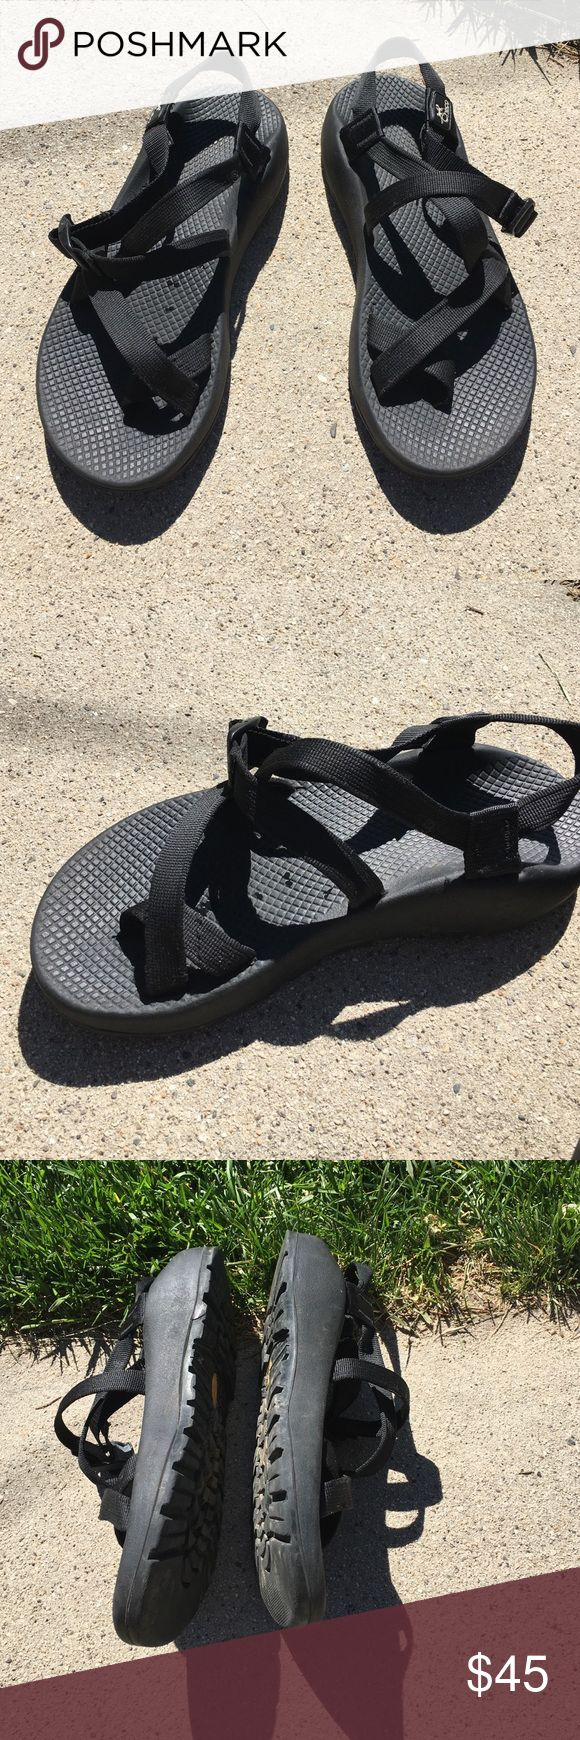 Chaco black Worn but still in great shape Chaco Shoes Sandals